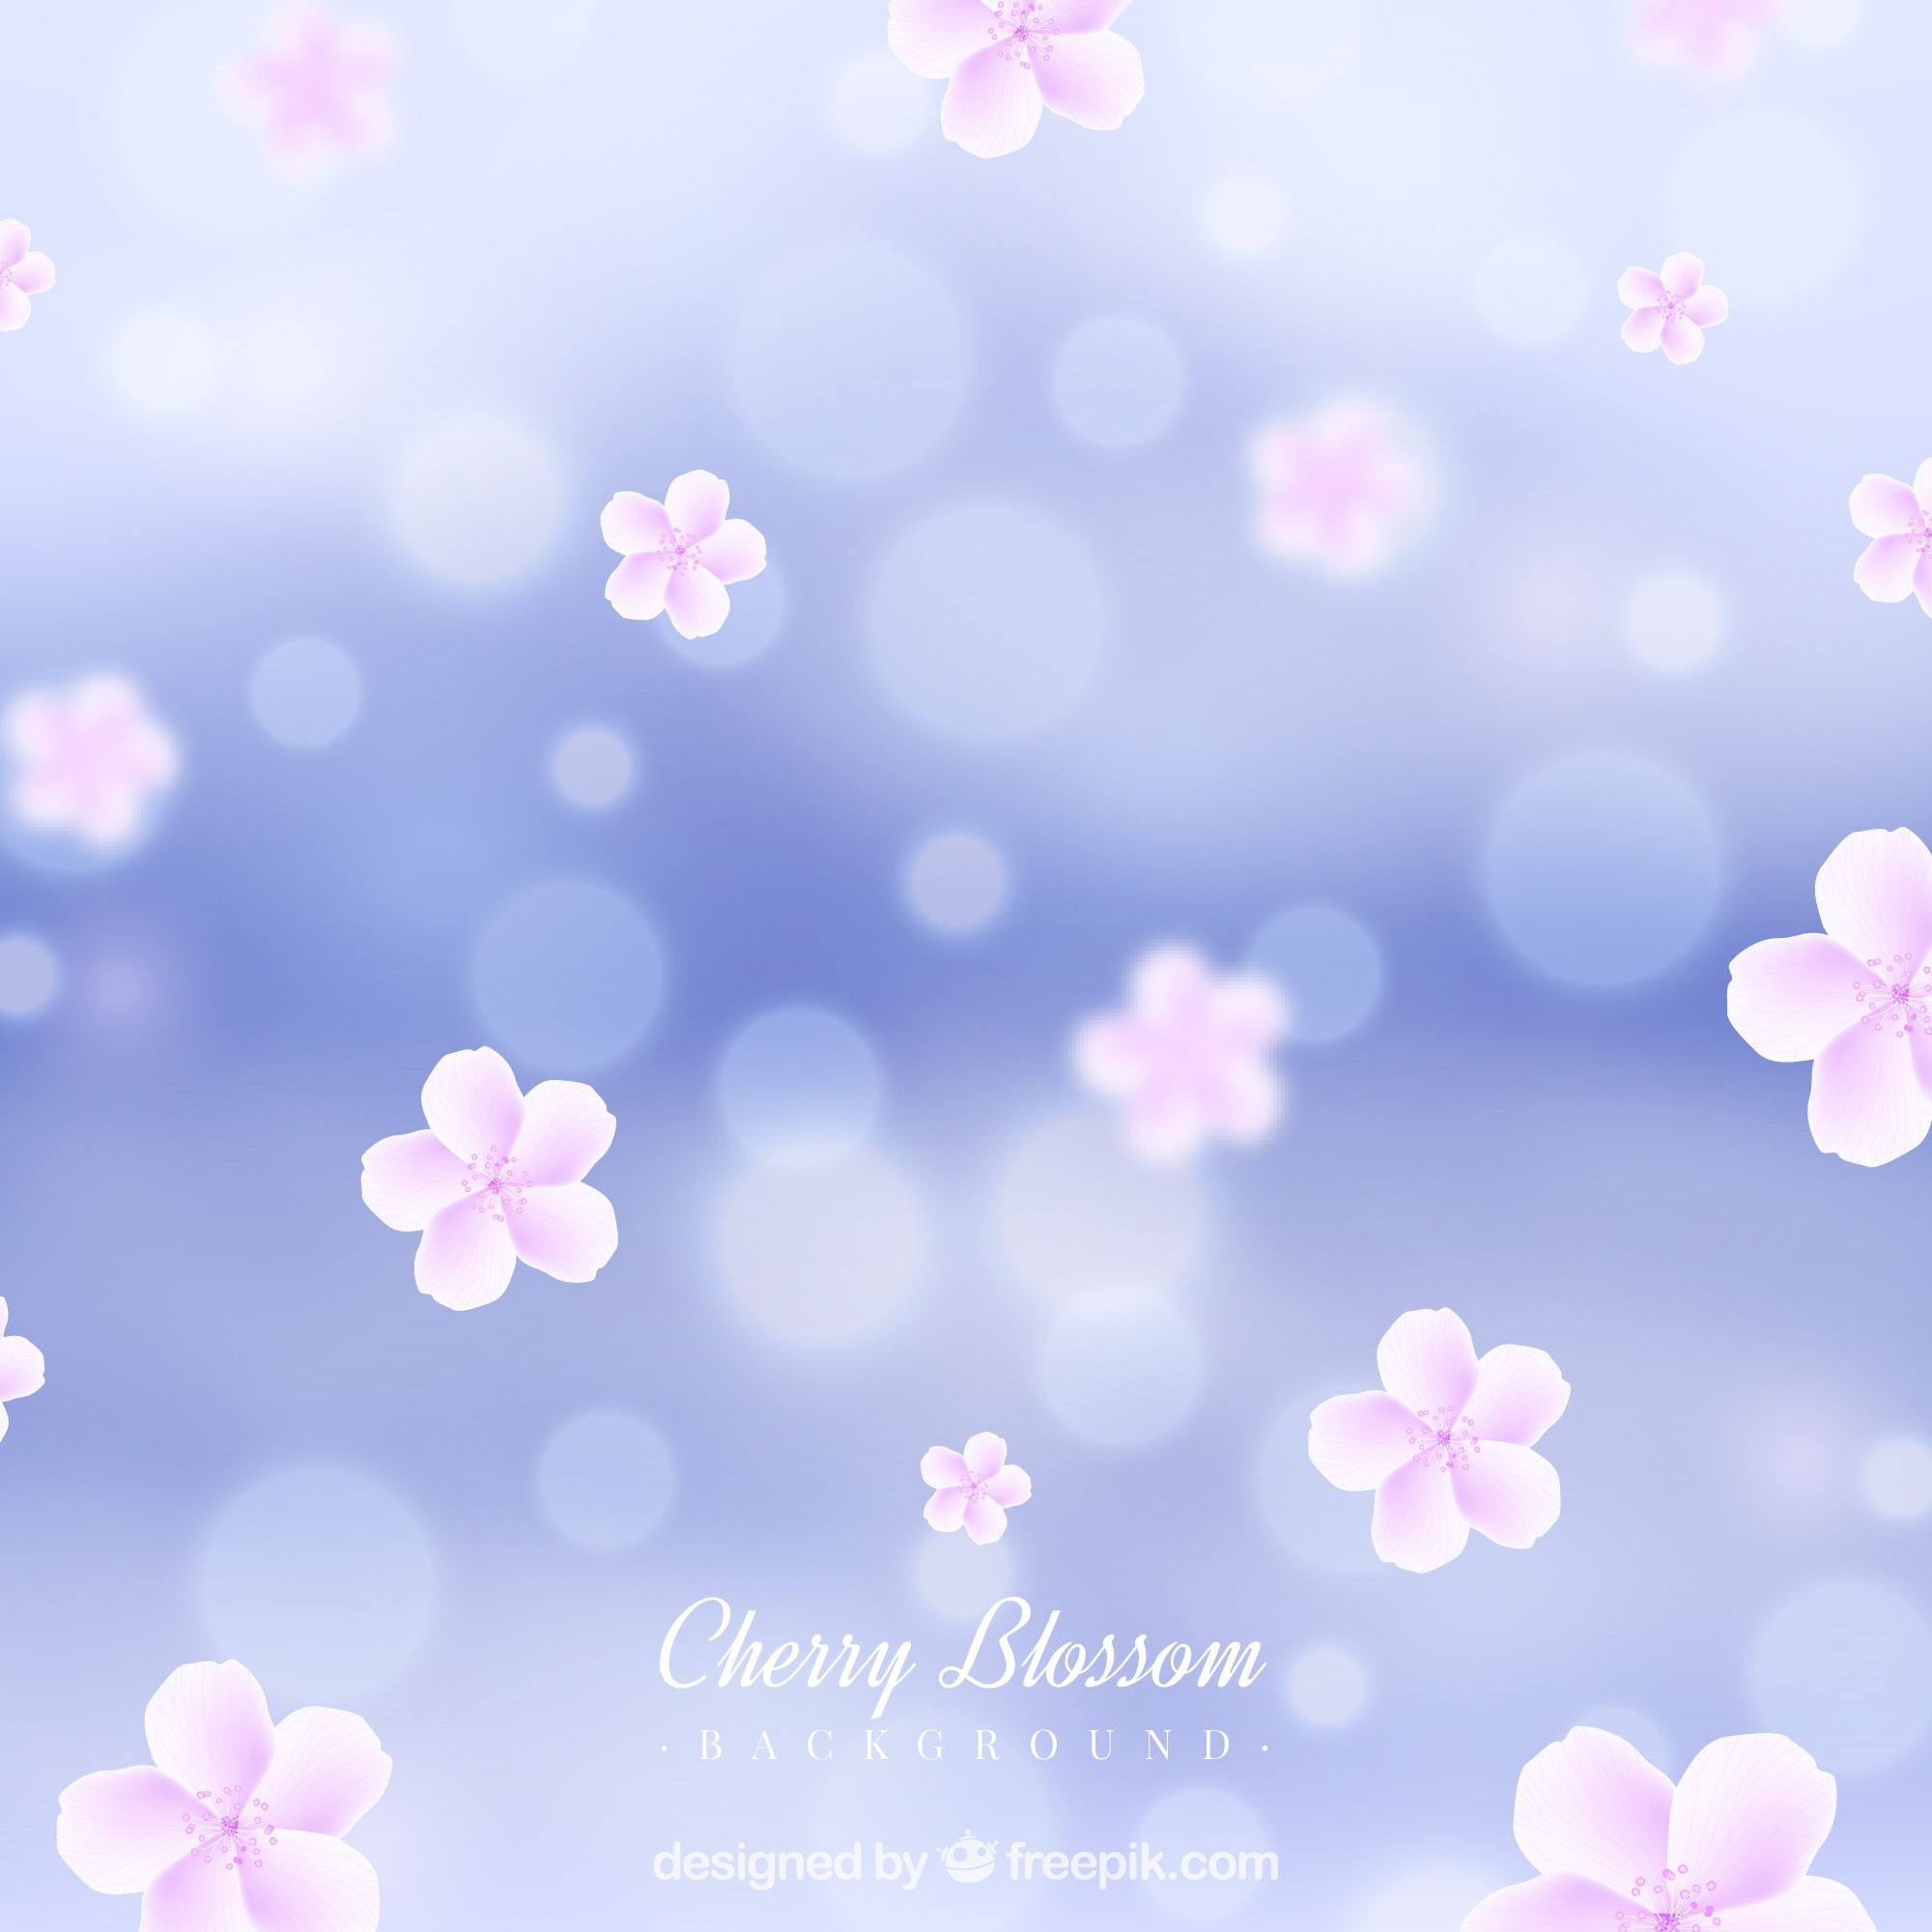 Blurred cherry blossom background